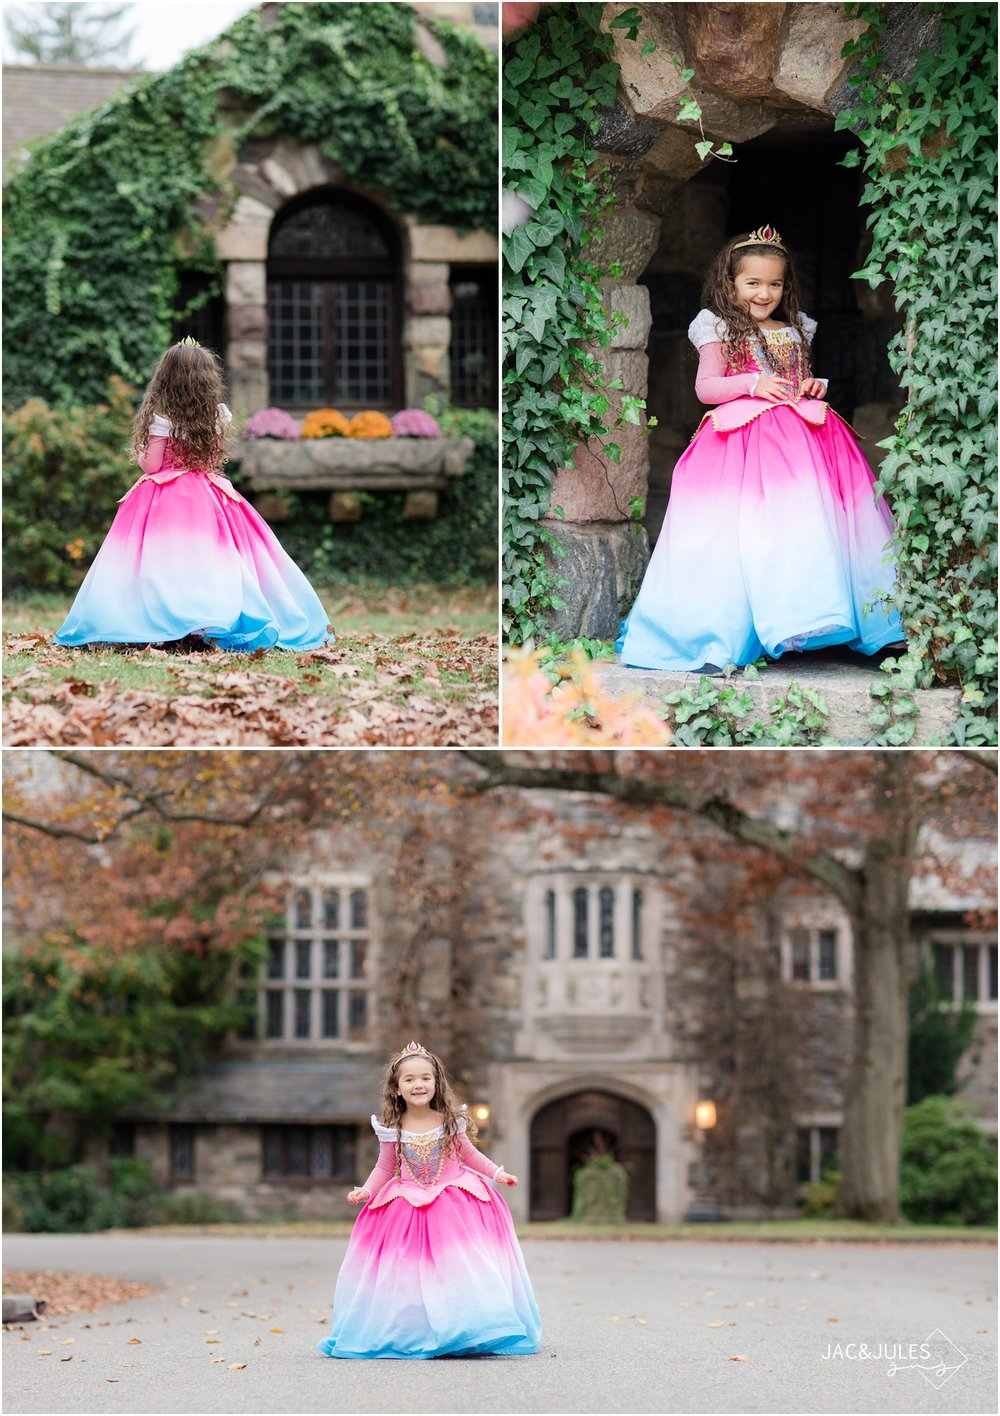 photos of little girl dressed as princess Aurora in front of the castle at Skylands Manor in Ringwood, NJ.